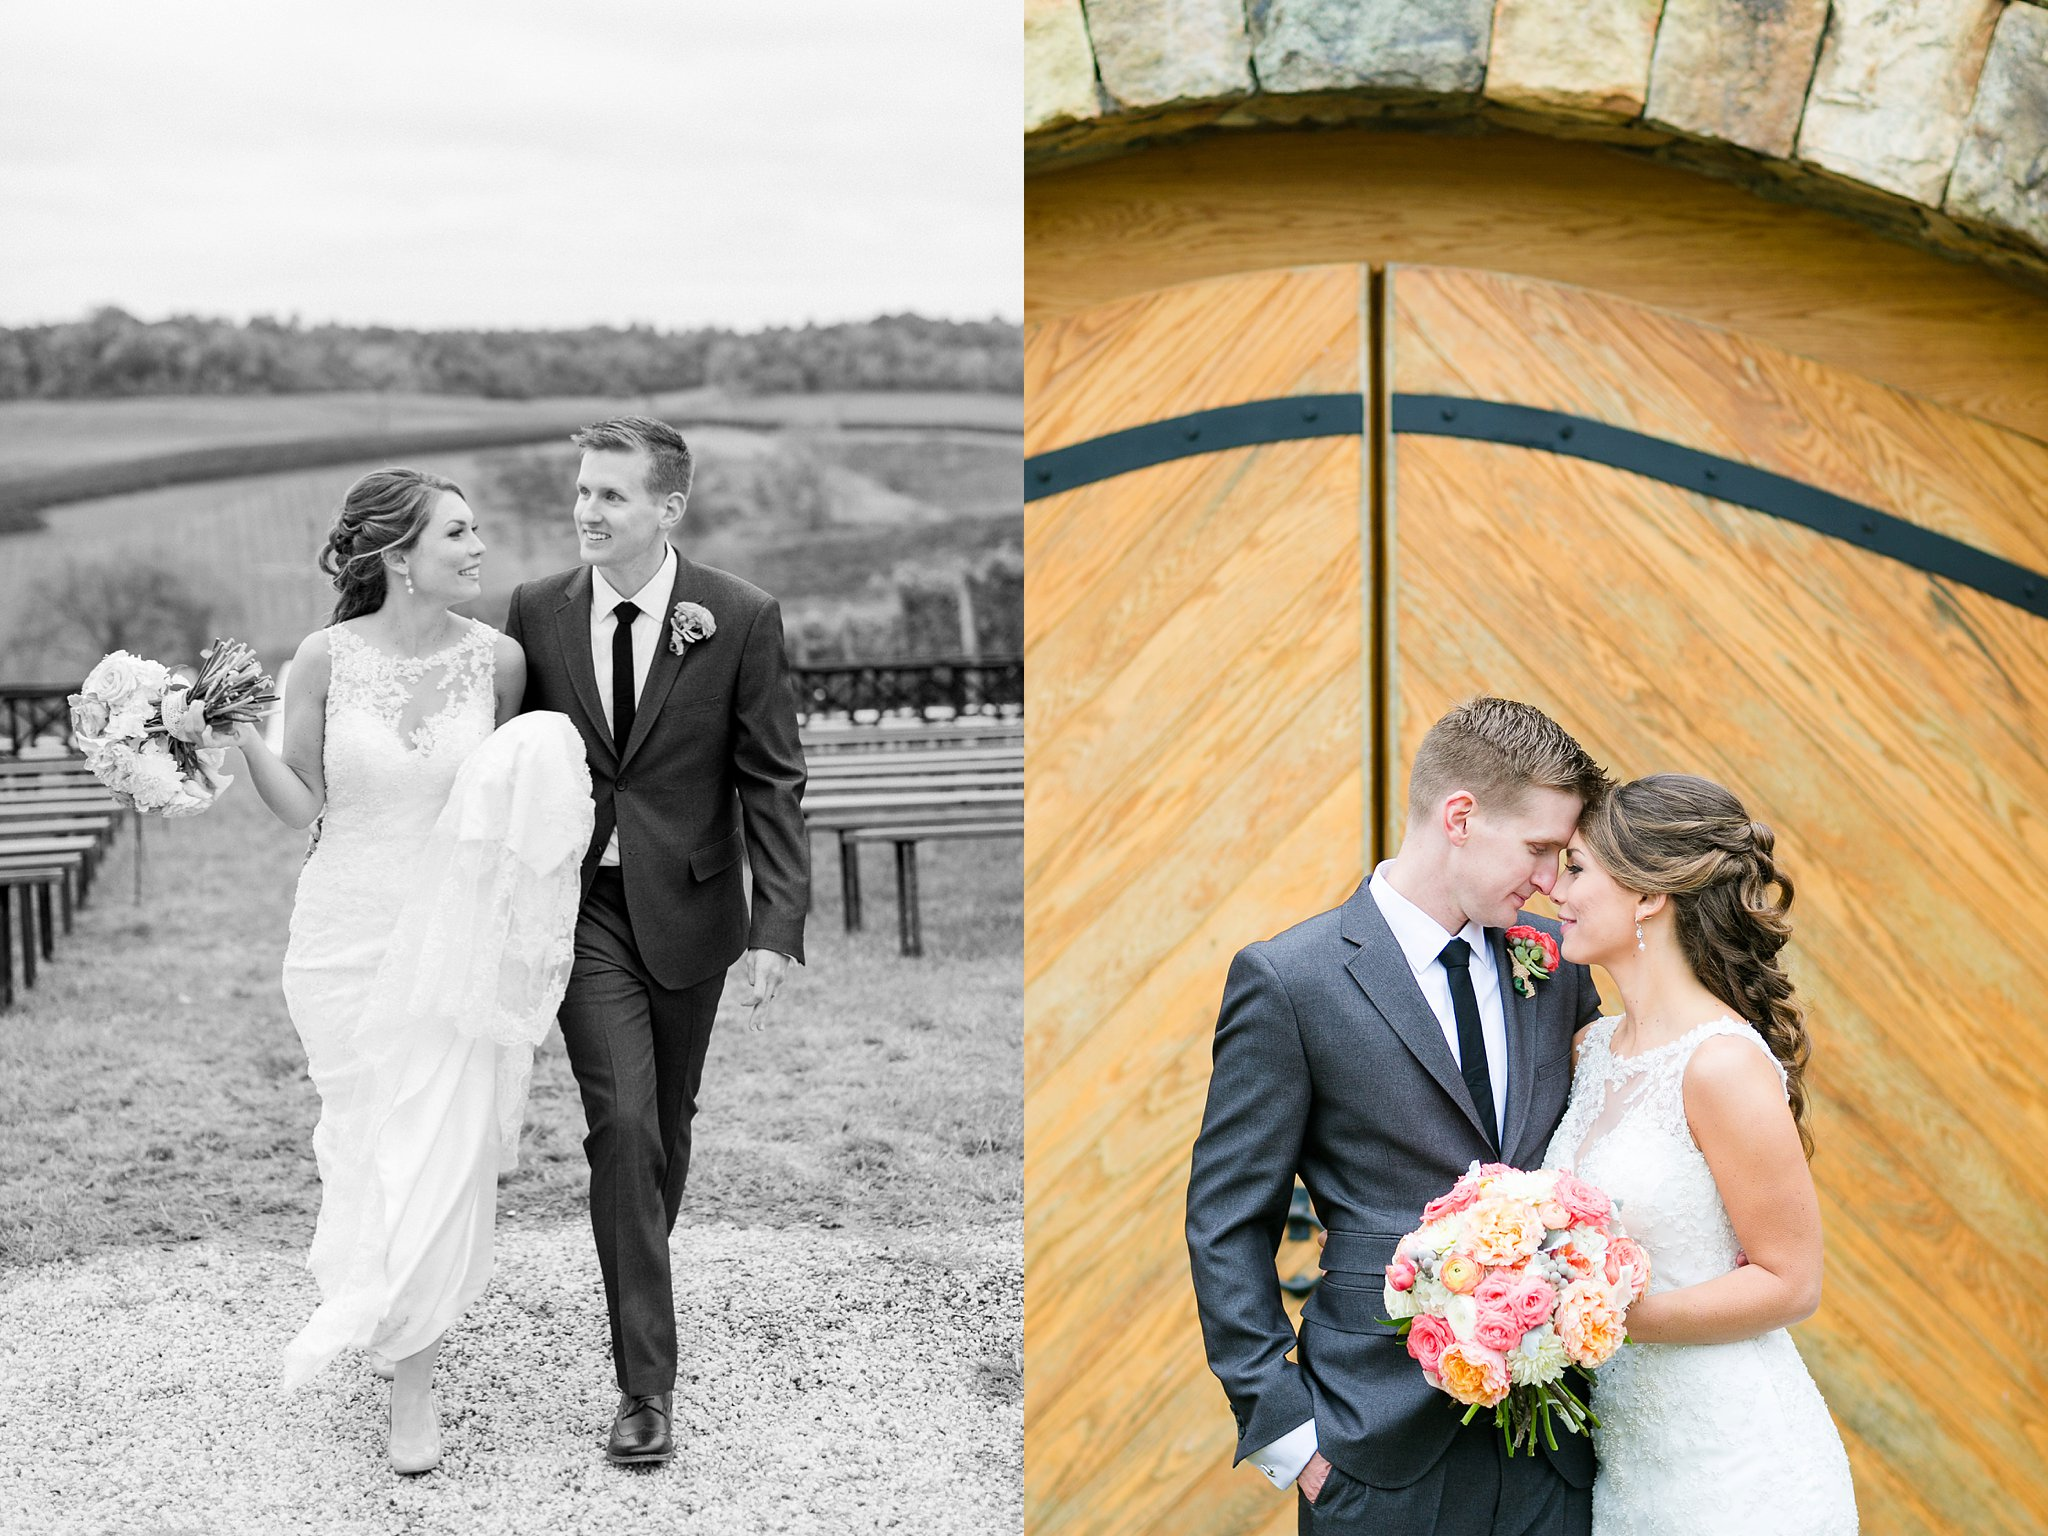 Stone Tower Winery Wedding Photos Virginia Wedding Photographer Megan Kelsey Photography Sam & Angela-244.jpg